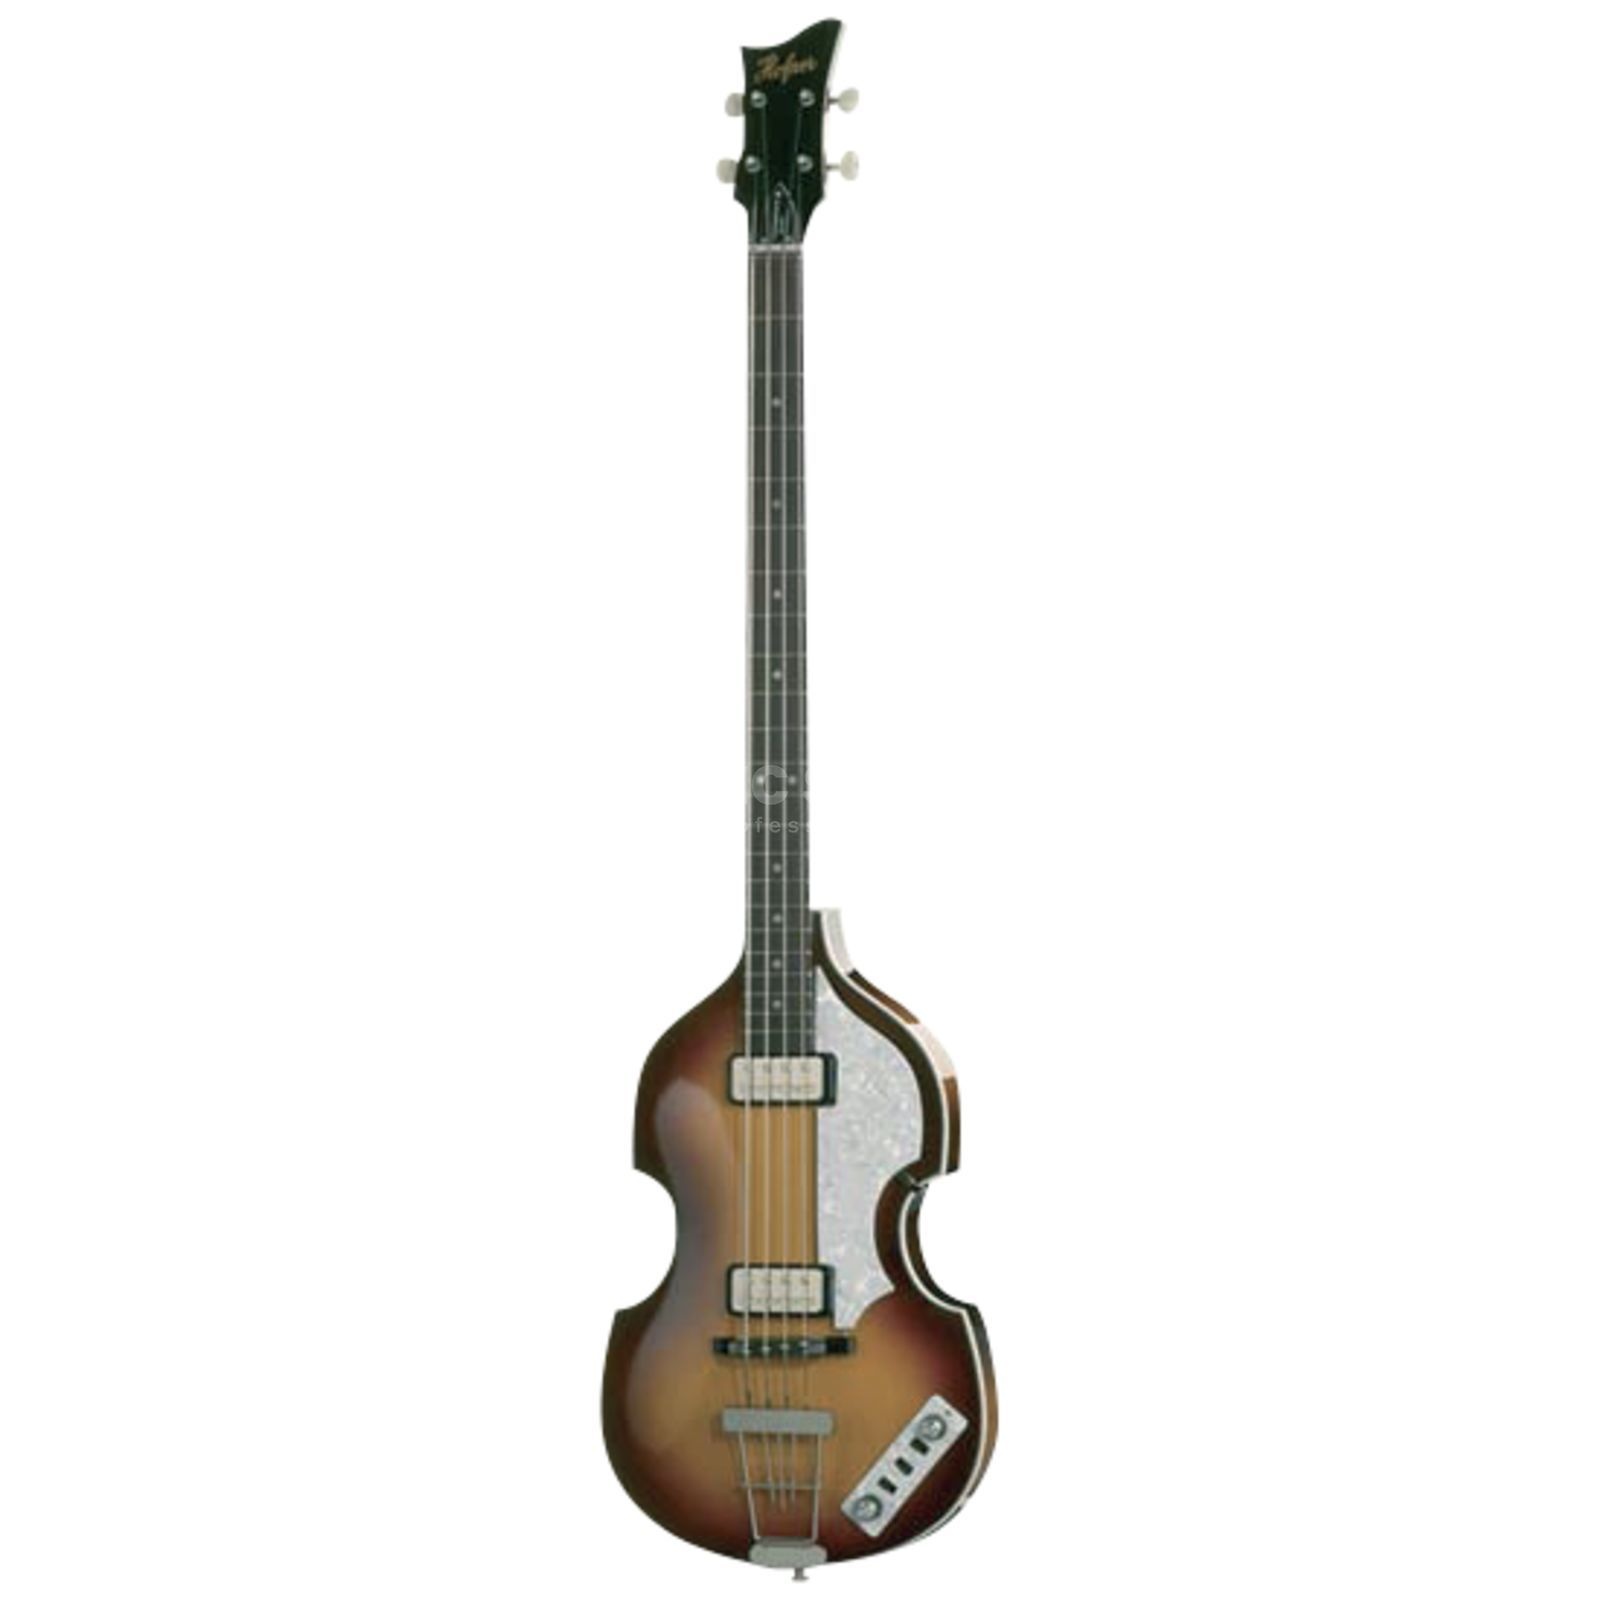 Höfner Violin Bass Sunburst Contemporary Series Produktbillede